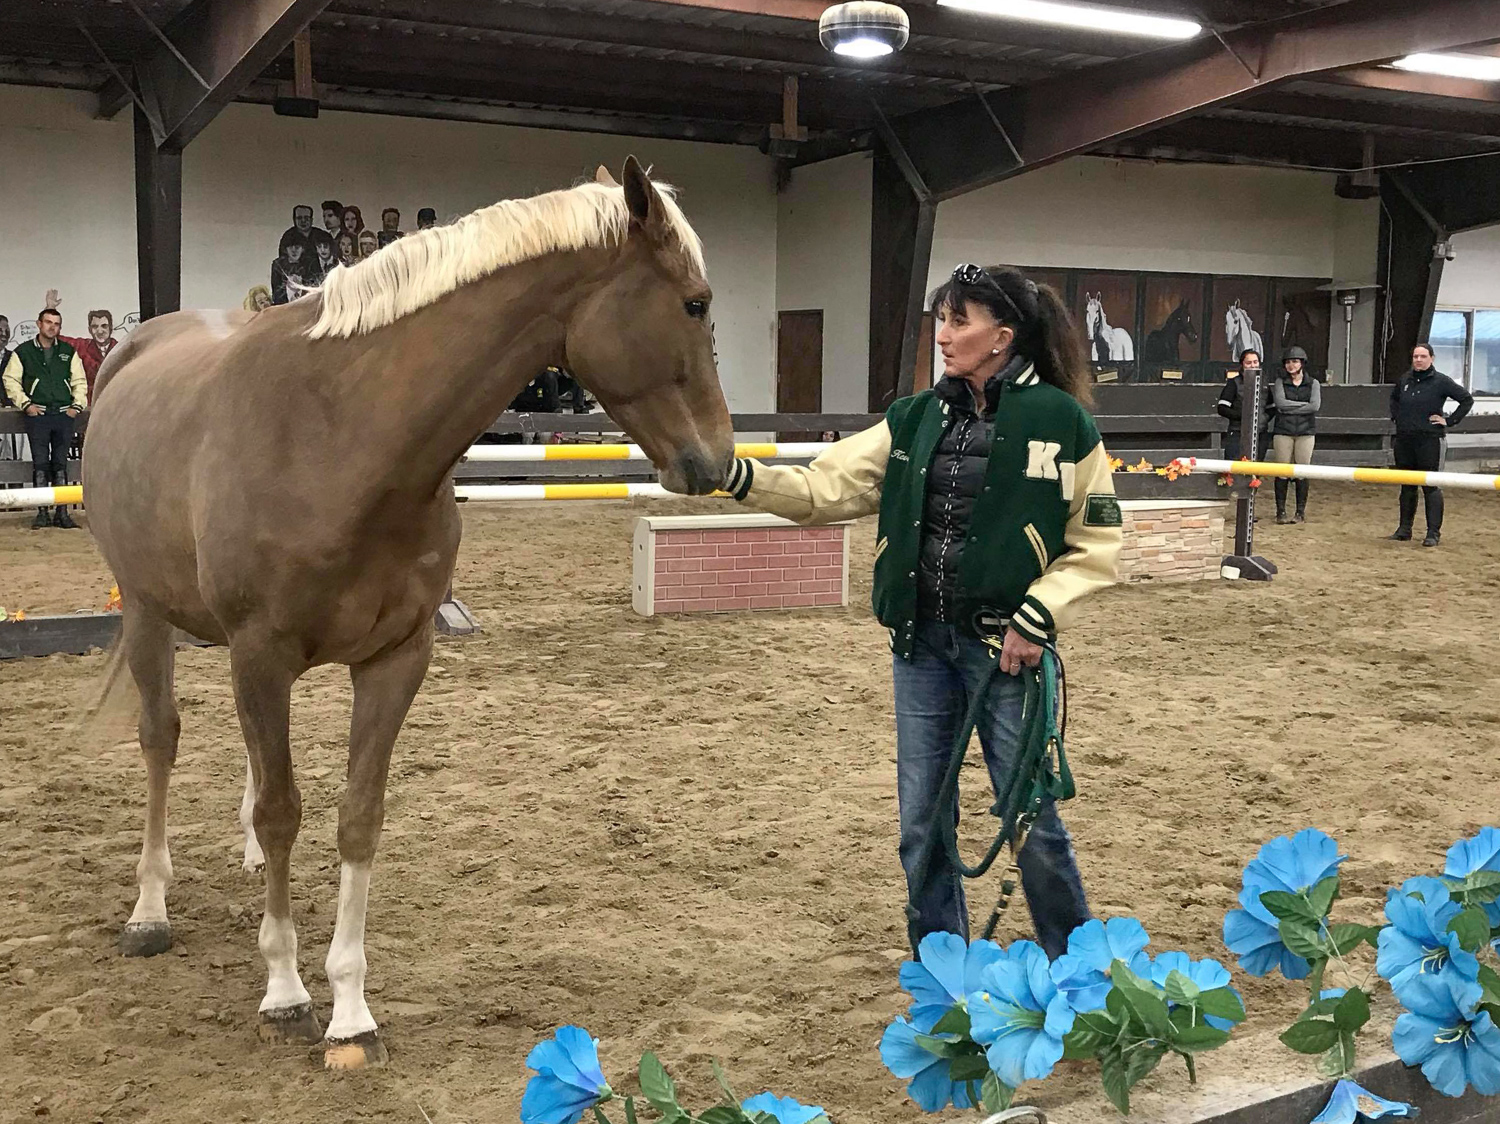 Julie Winkel explains how to read a horse's body language and to safely approach and confidently halter a horse.